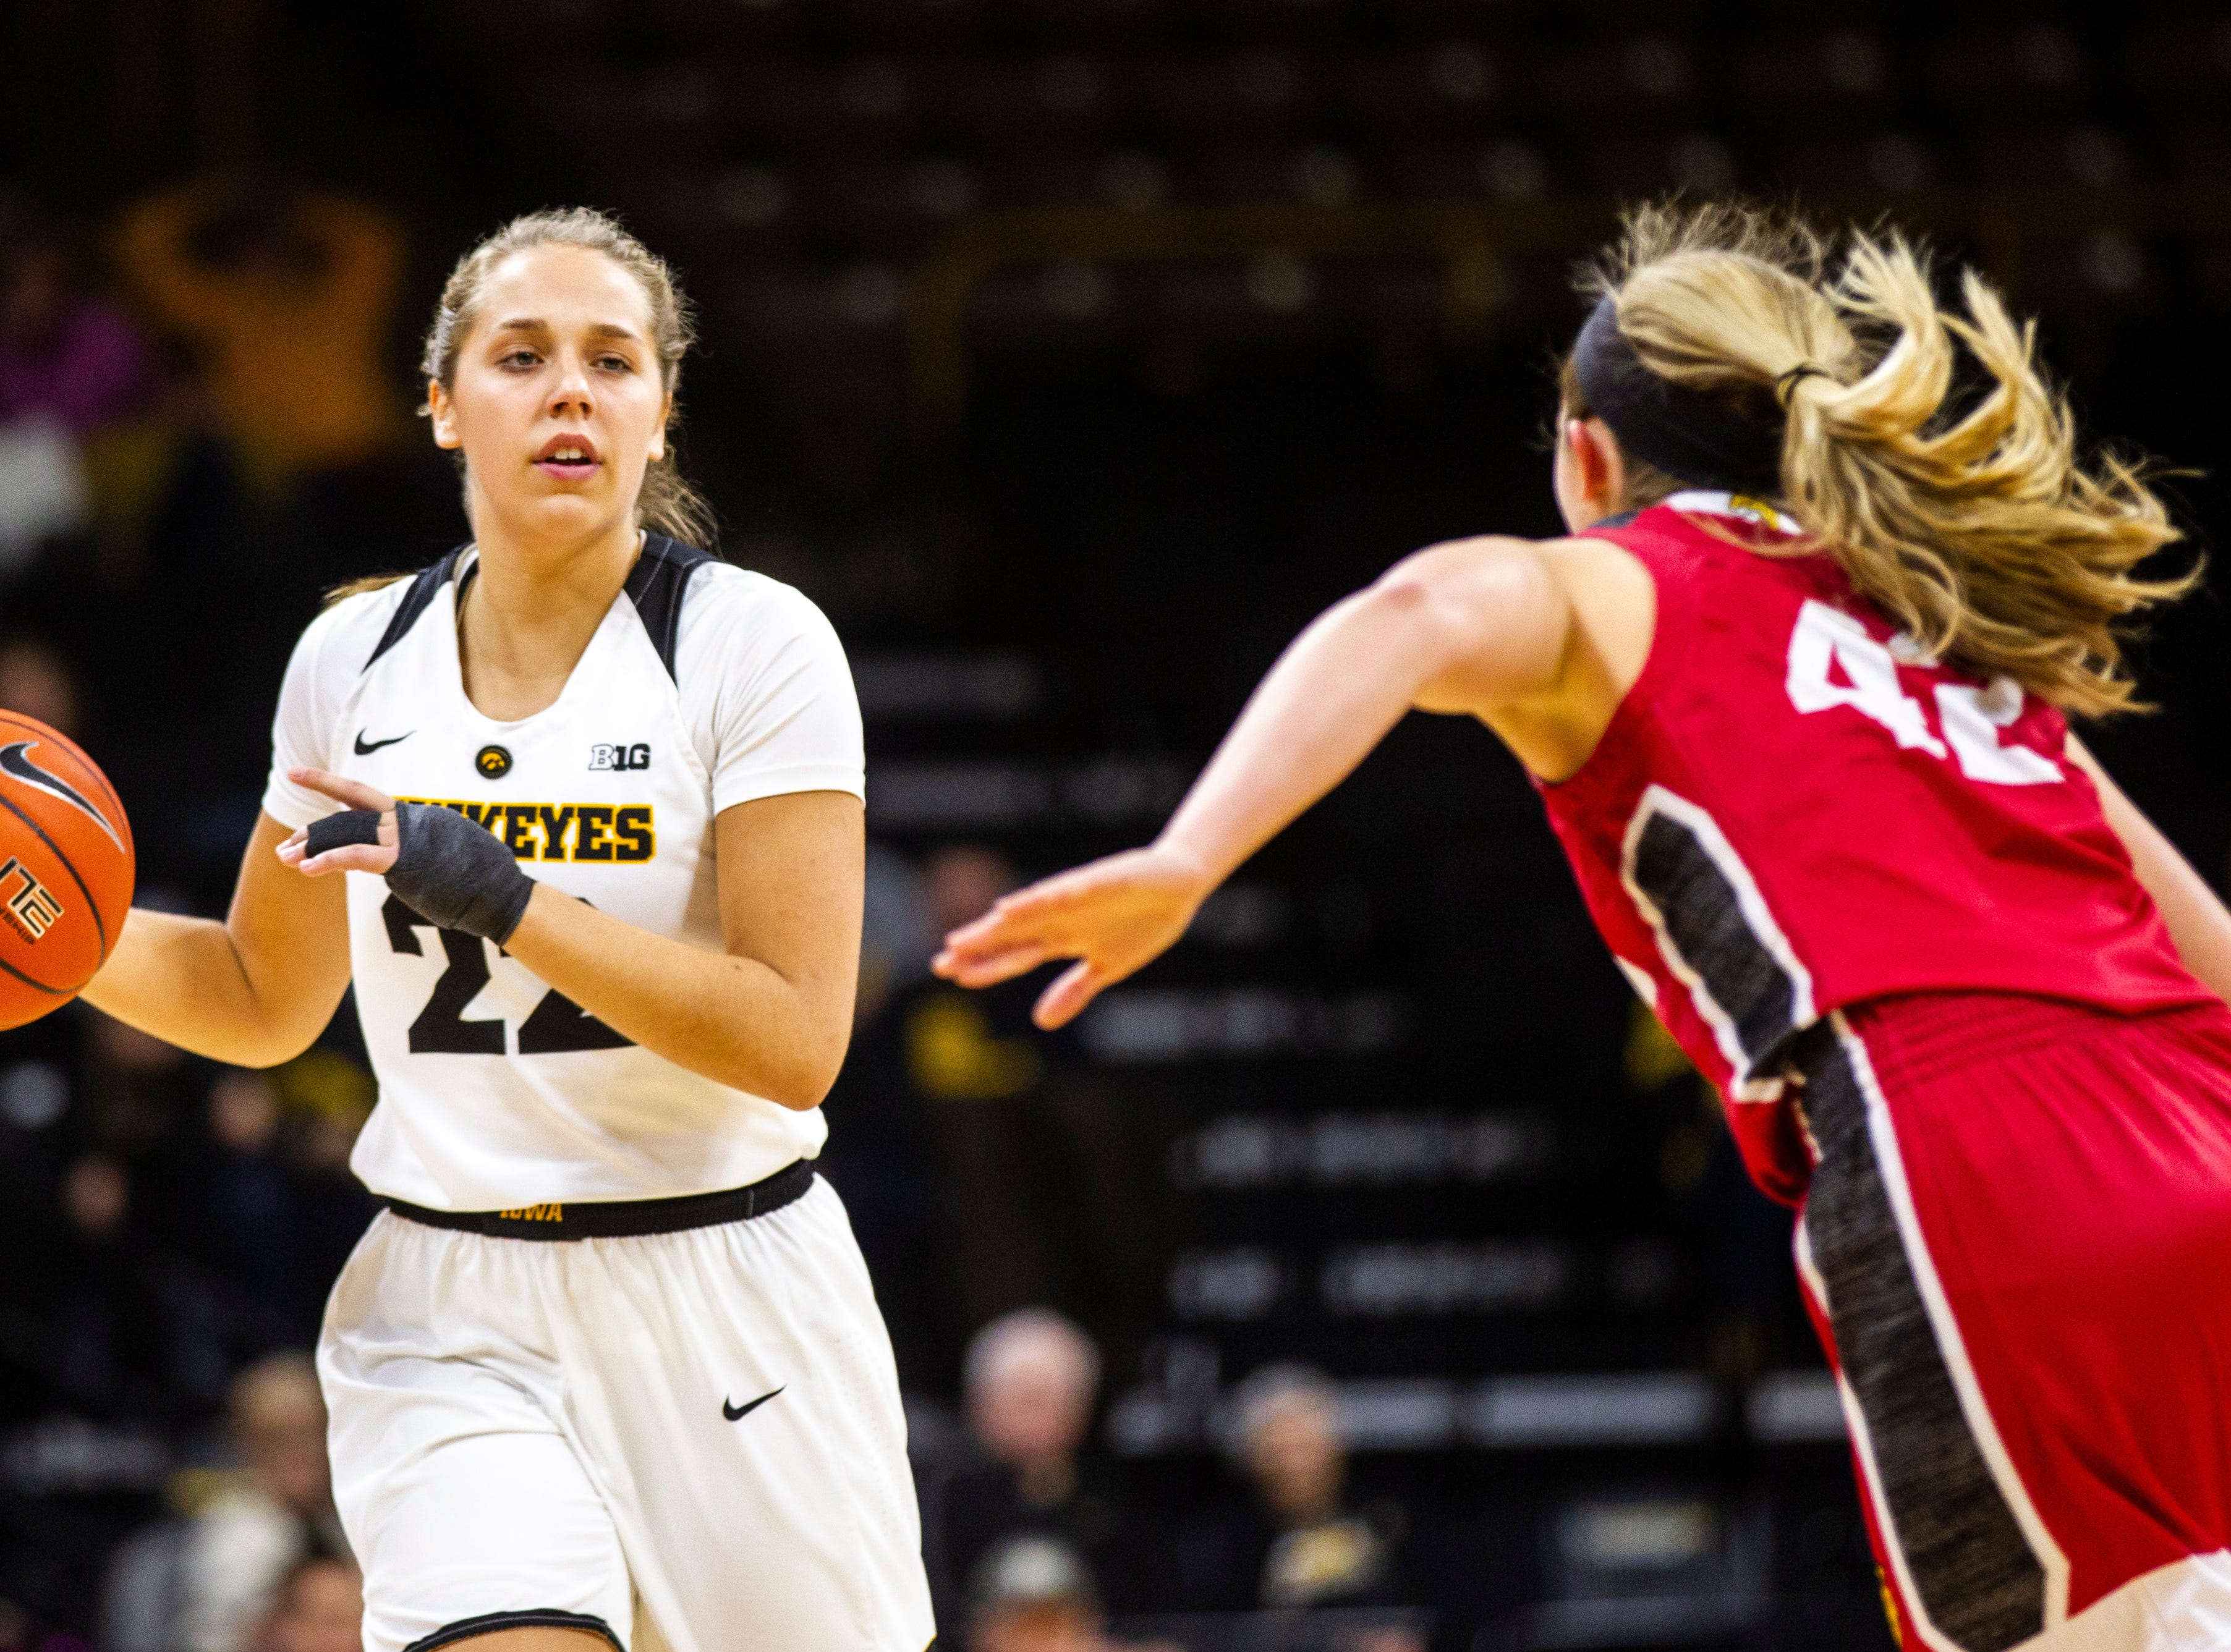 Iowa guard Kathleen Doyle (22) takes the ball up the court during a NCAA women's basketball game on Saturday, Dec. 8, 2018, at Carver-Hawkeye Arena in Iowa City.